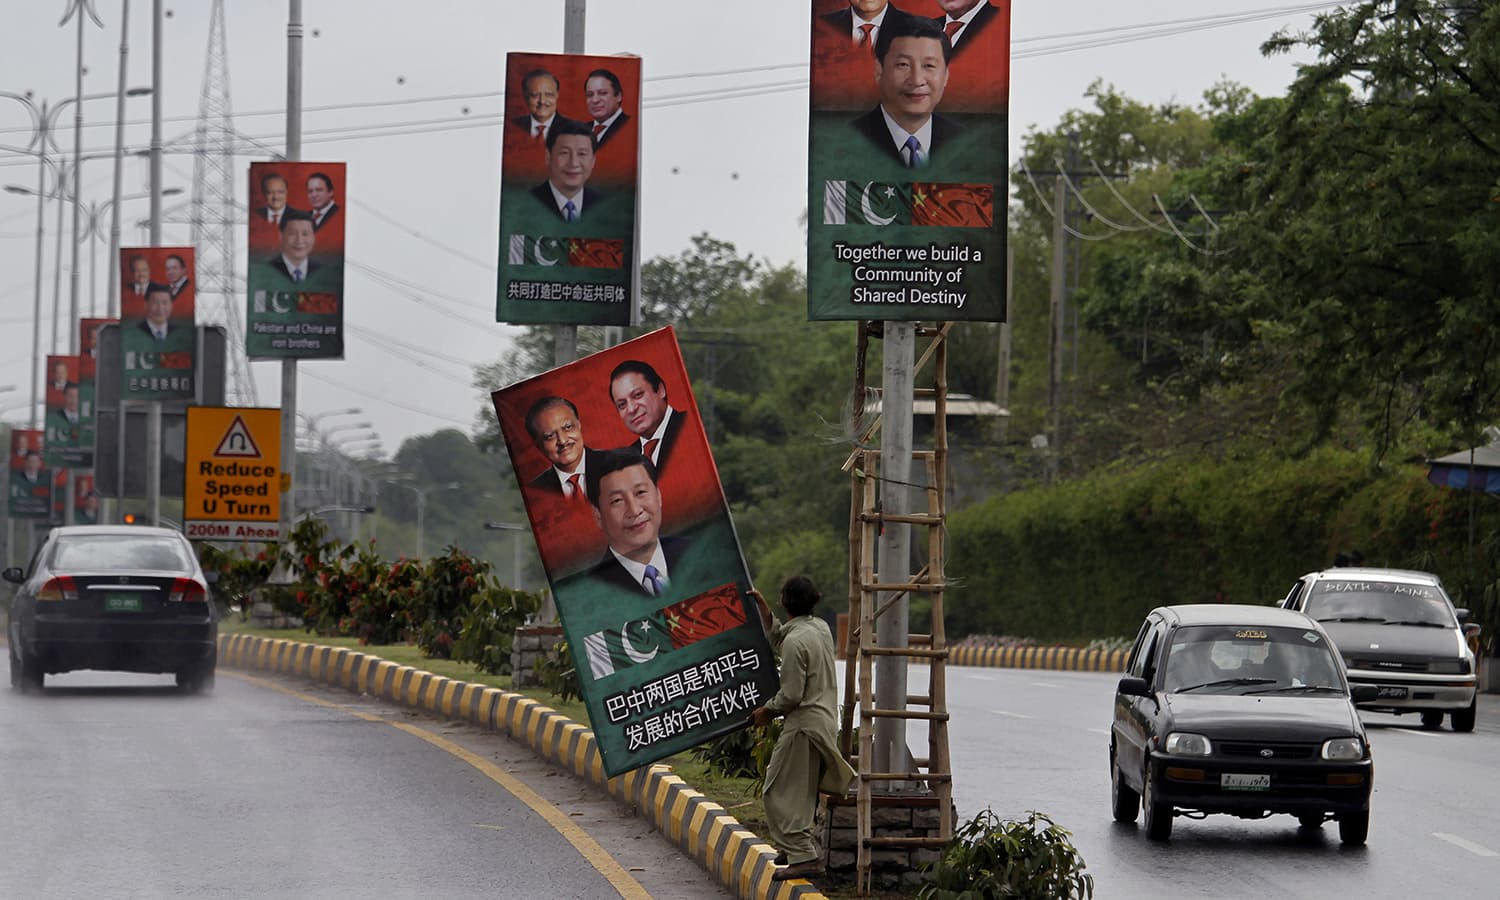 A worker hangs a billboard showing pictures of Chinese President Xi Jinping, center, with Pakistan's President Mamnoon Hussain, left, and Prime Minister Nawaz Sharif welcoming Xi Jingping to Islamabad, Pakistan, Sunday, April 19, 2015.— AP